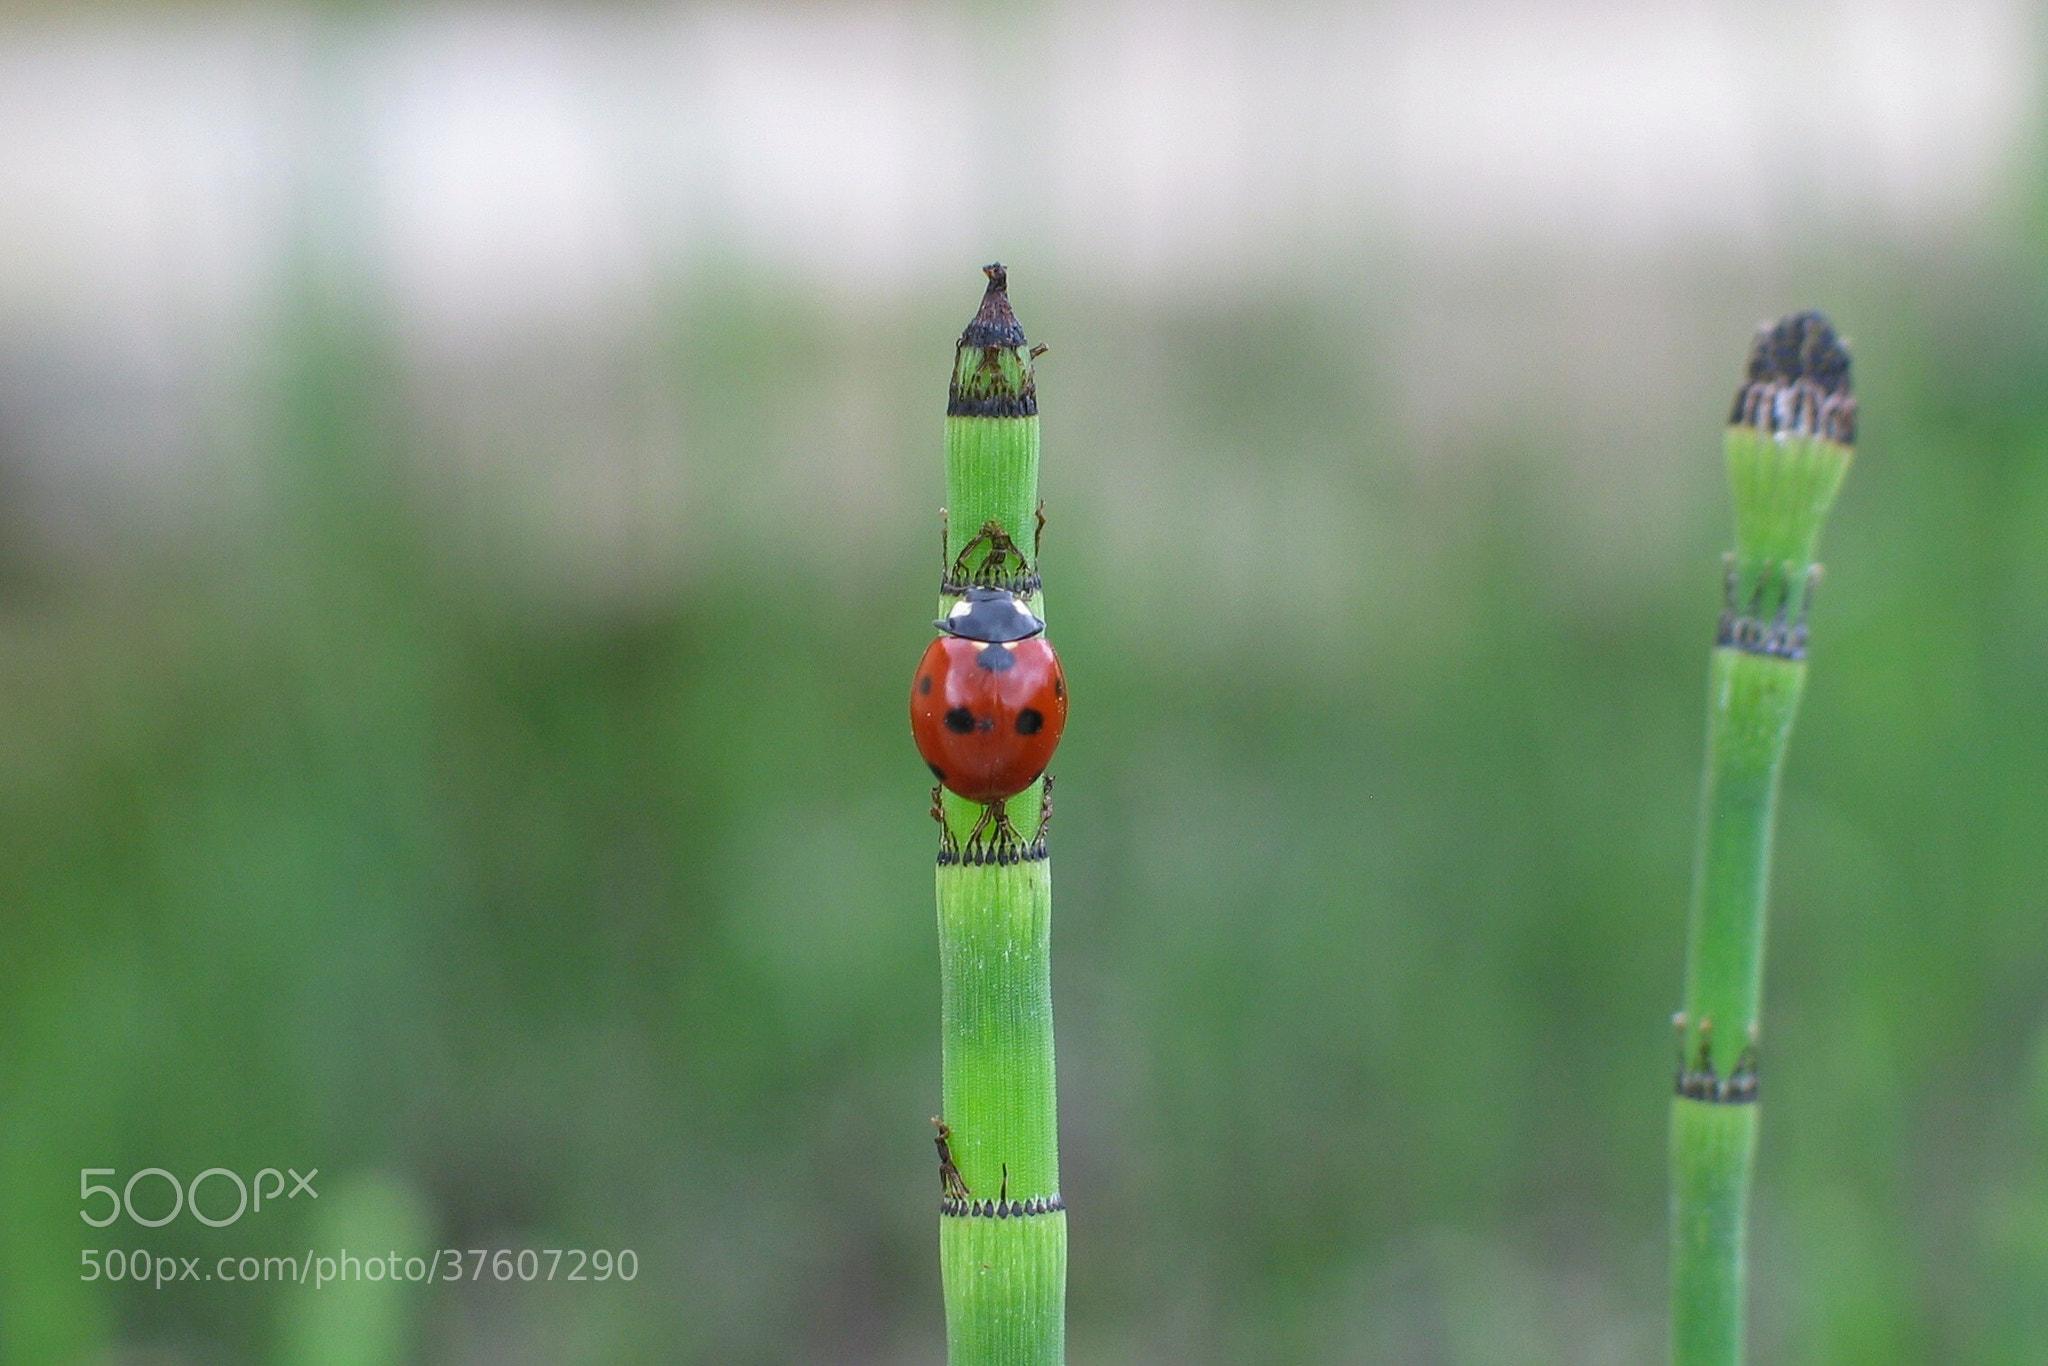 Photograph ladybug on reed by kayla lister on 500px